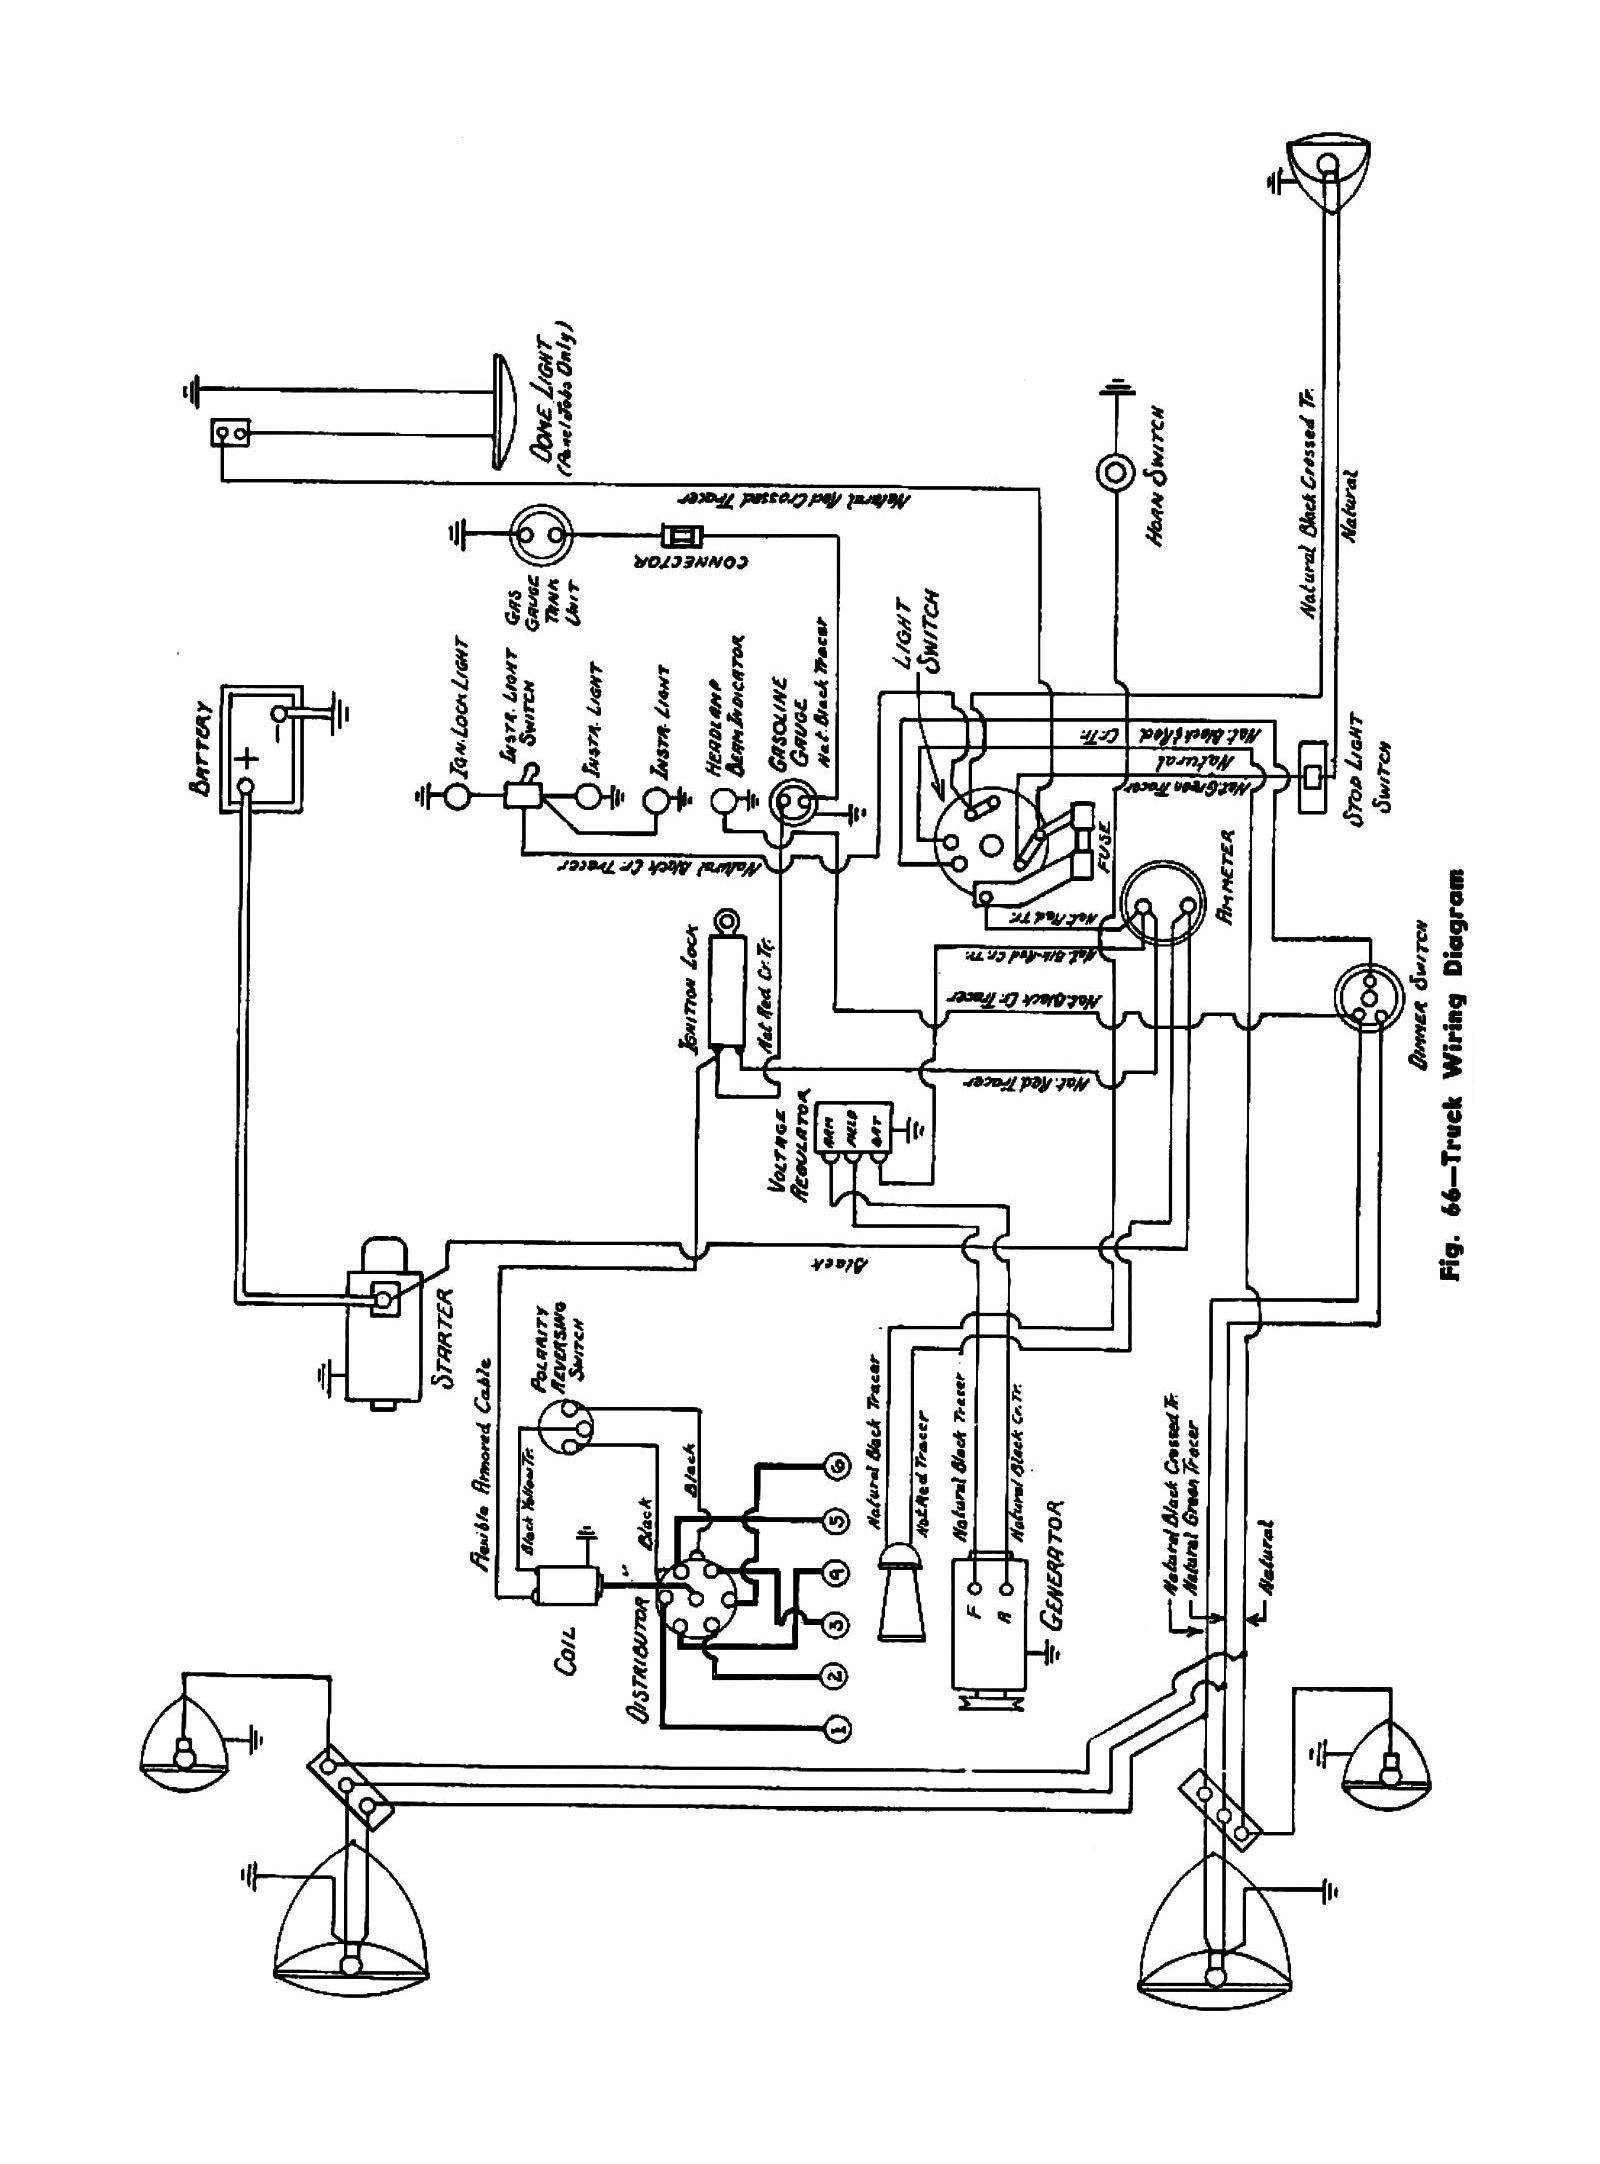 45truck ihc truck wiring diagrams mazda truck wiring diagrams \u2022 free Chevy Truck Fuse Box Diagram at fashall.co